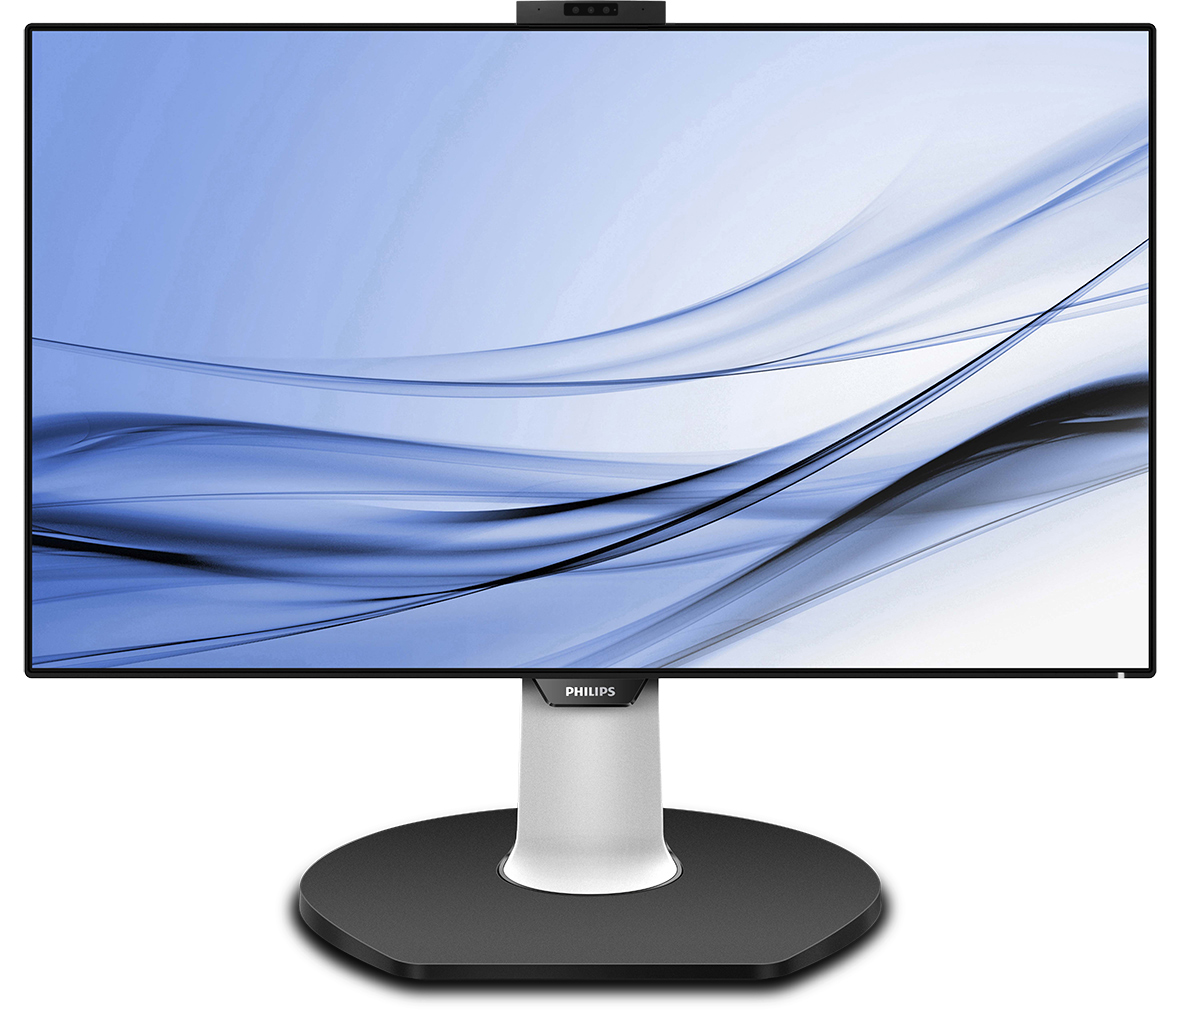 Philips Brilliance 329P9H: A 4K IPS Monitor with USB-C Dock, GbE